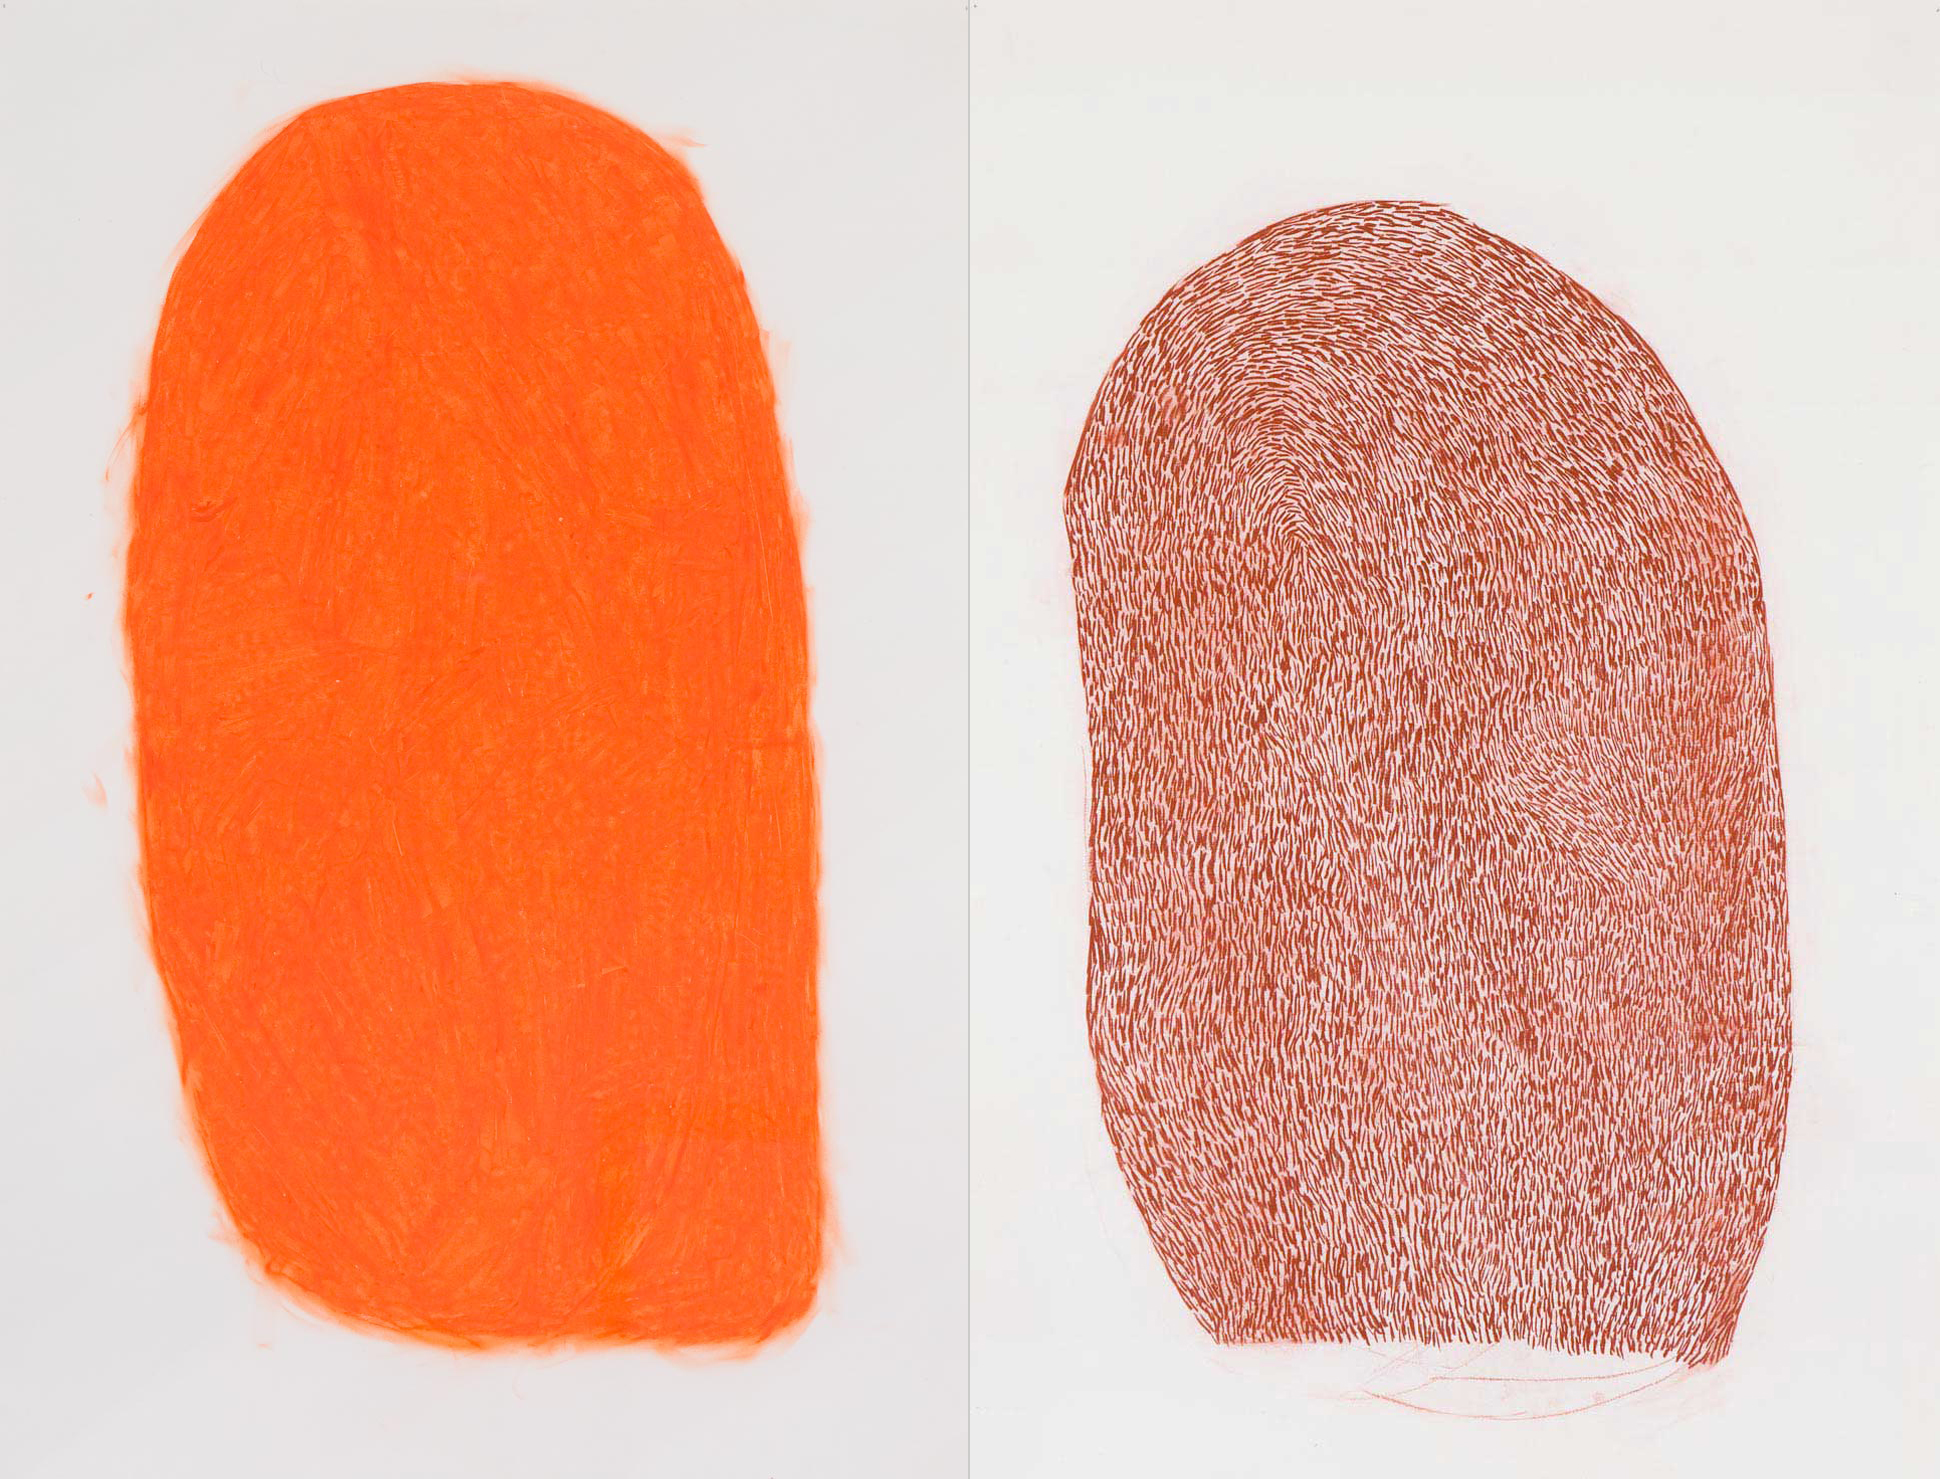 Jaime Angelopoulos - Diptych 1